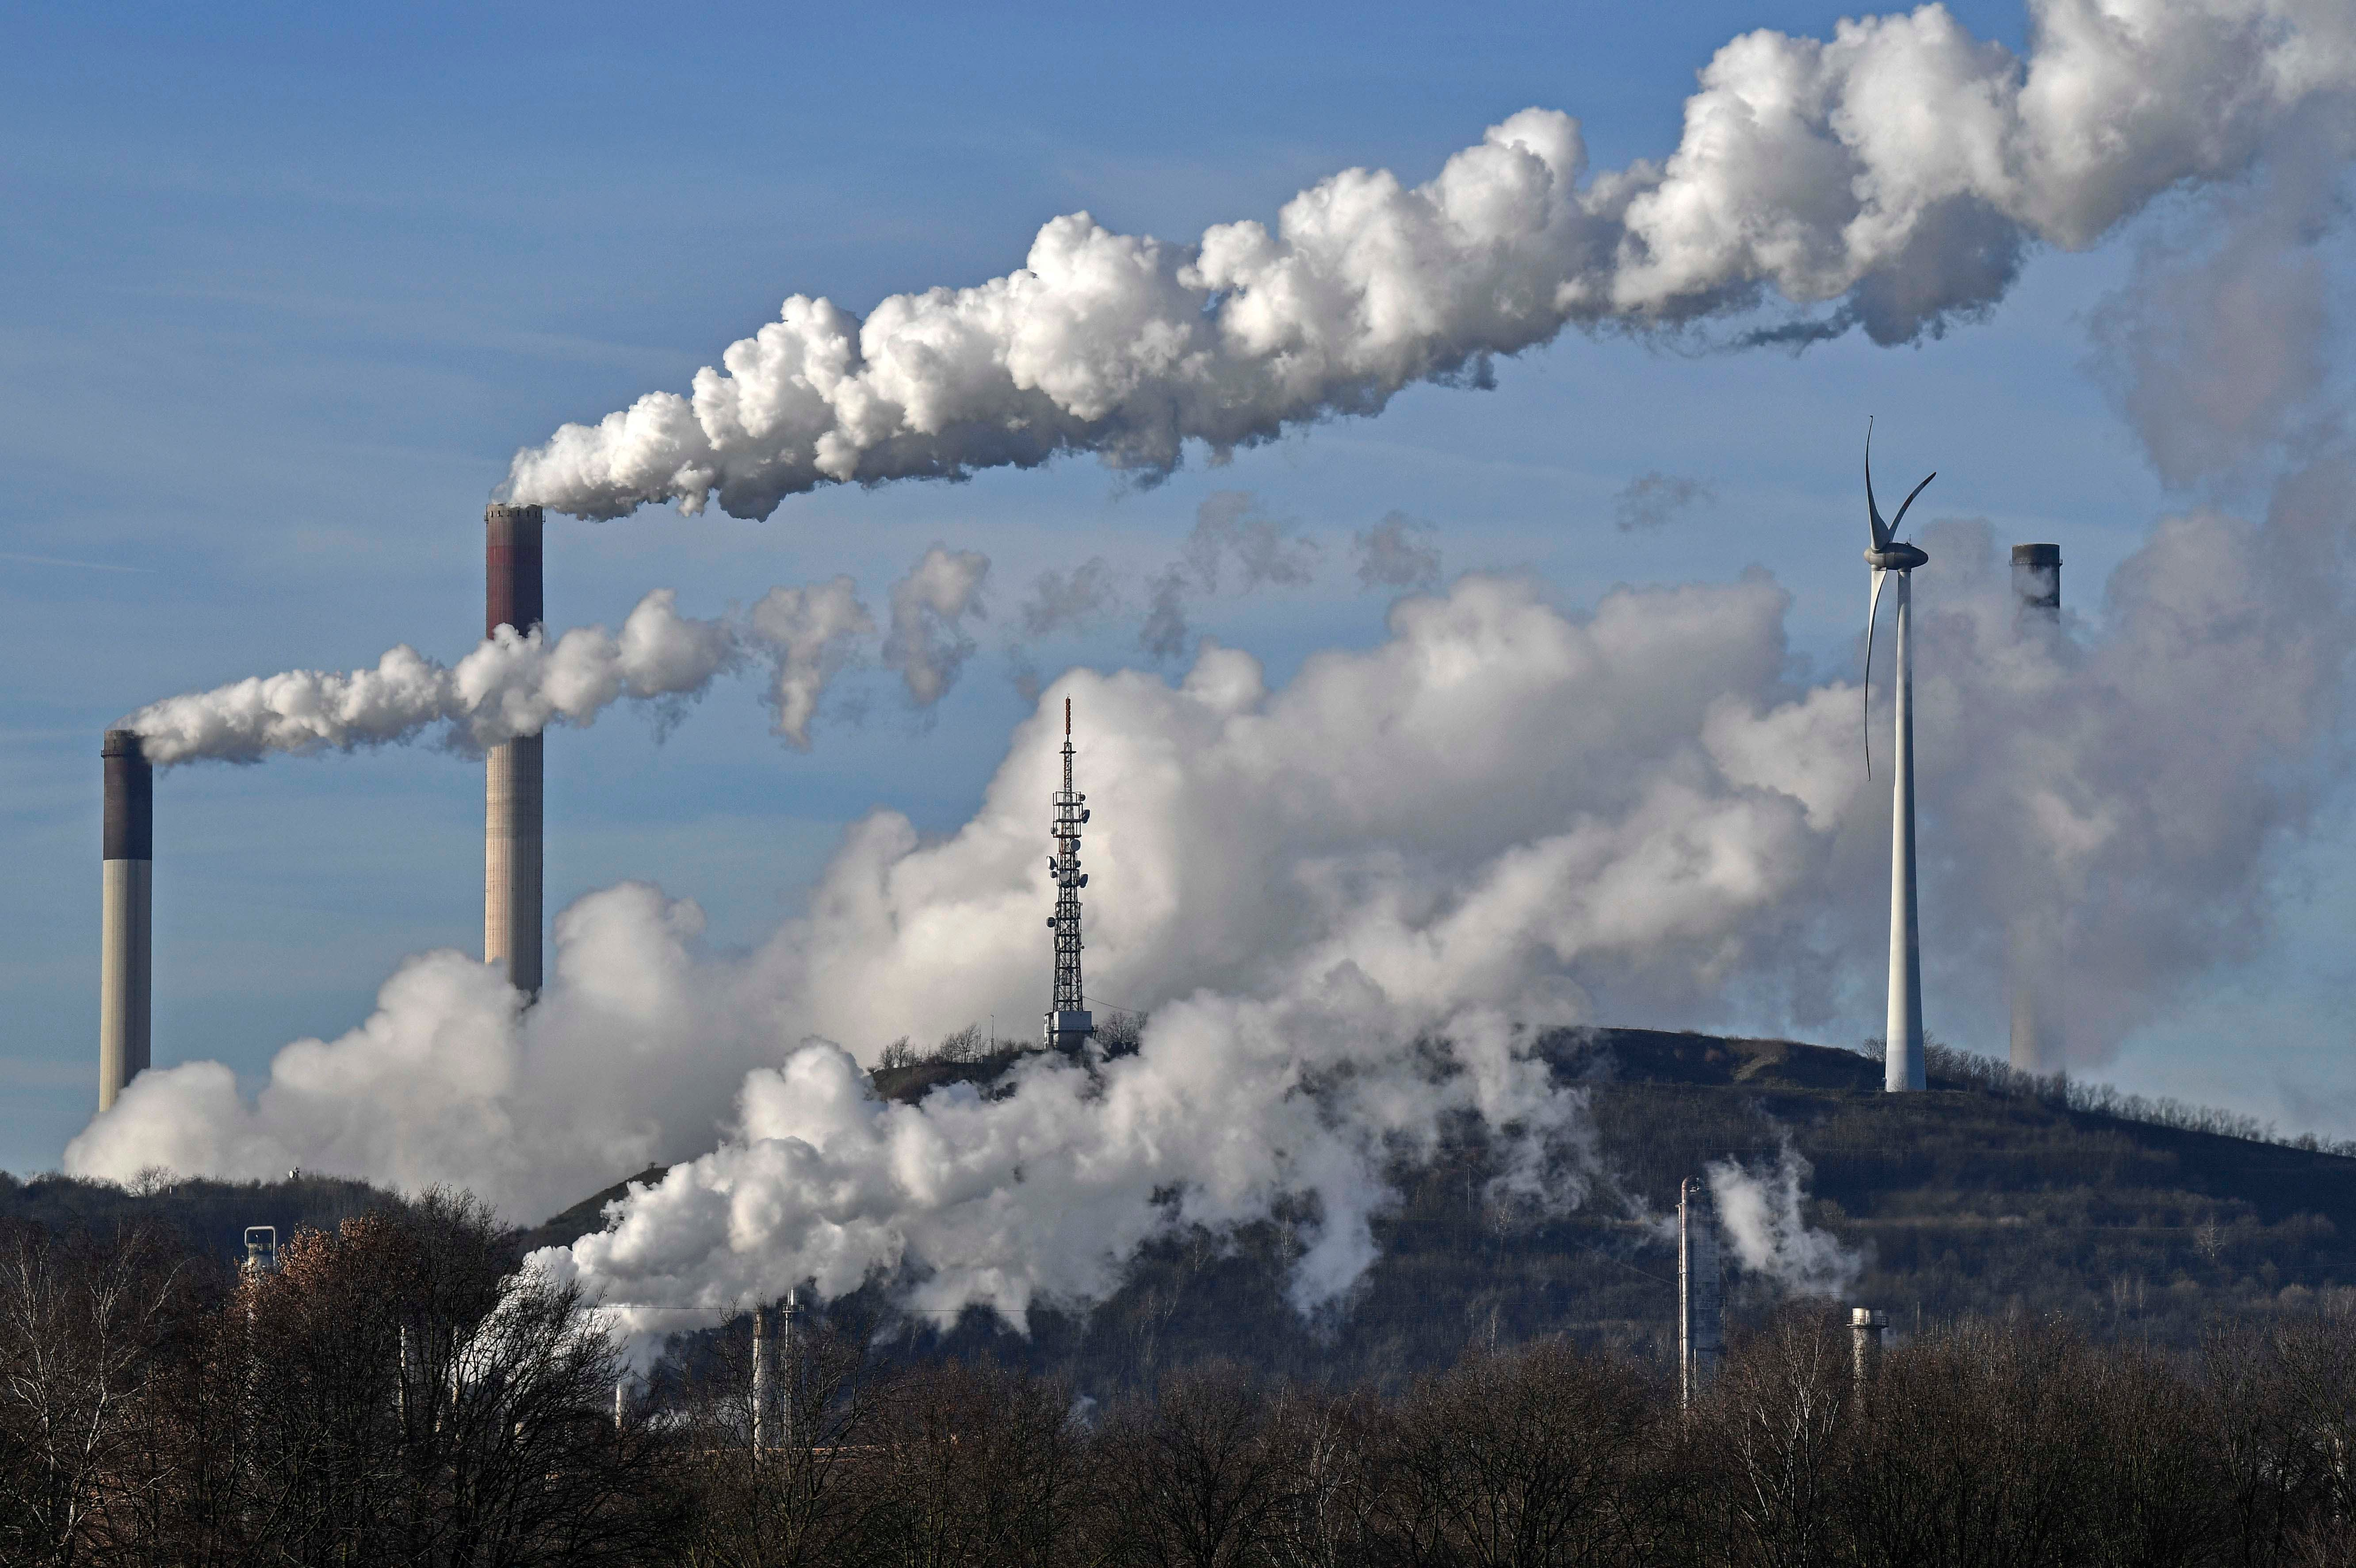 G7 Governments: End Fossil Fuel Subsidies